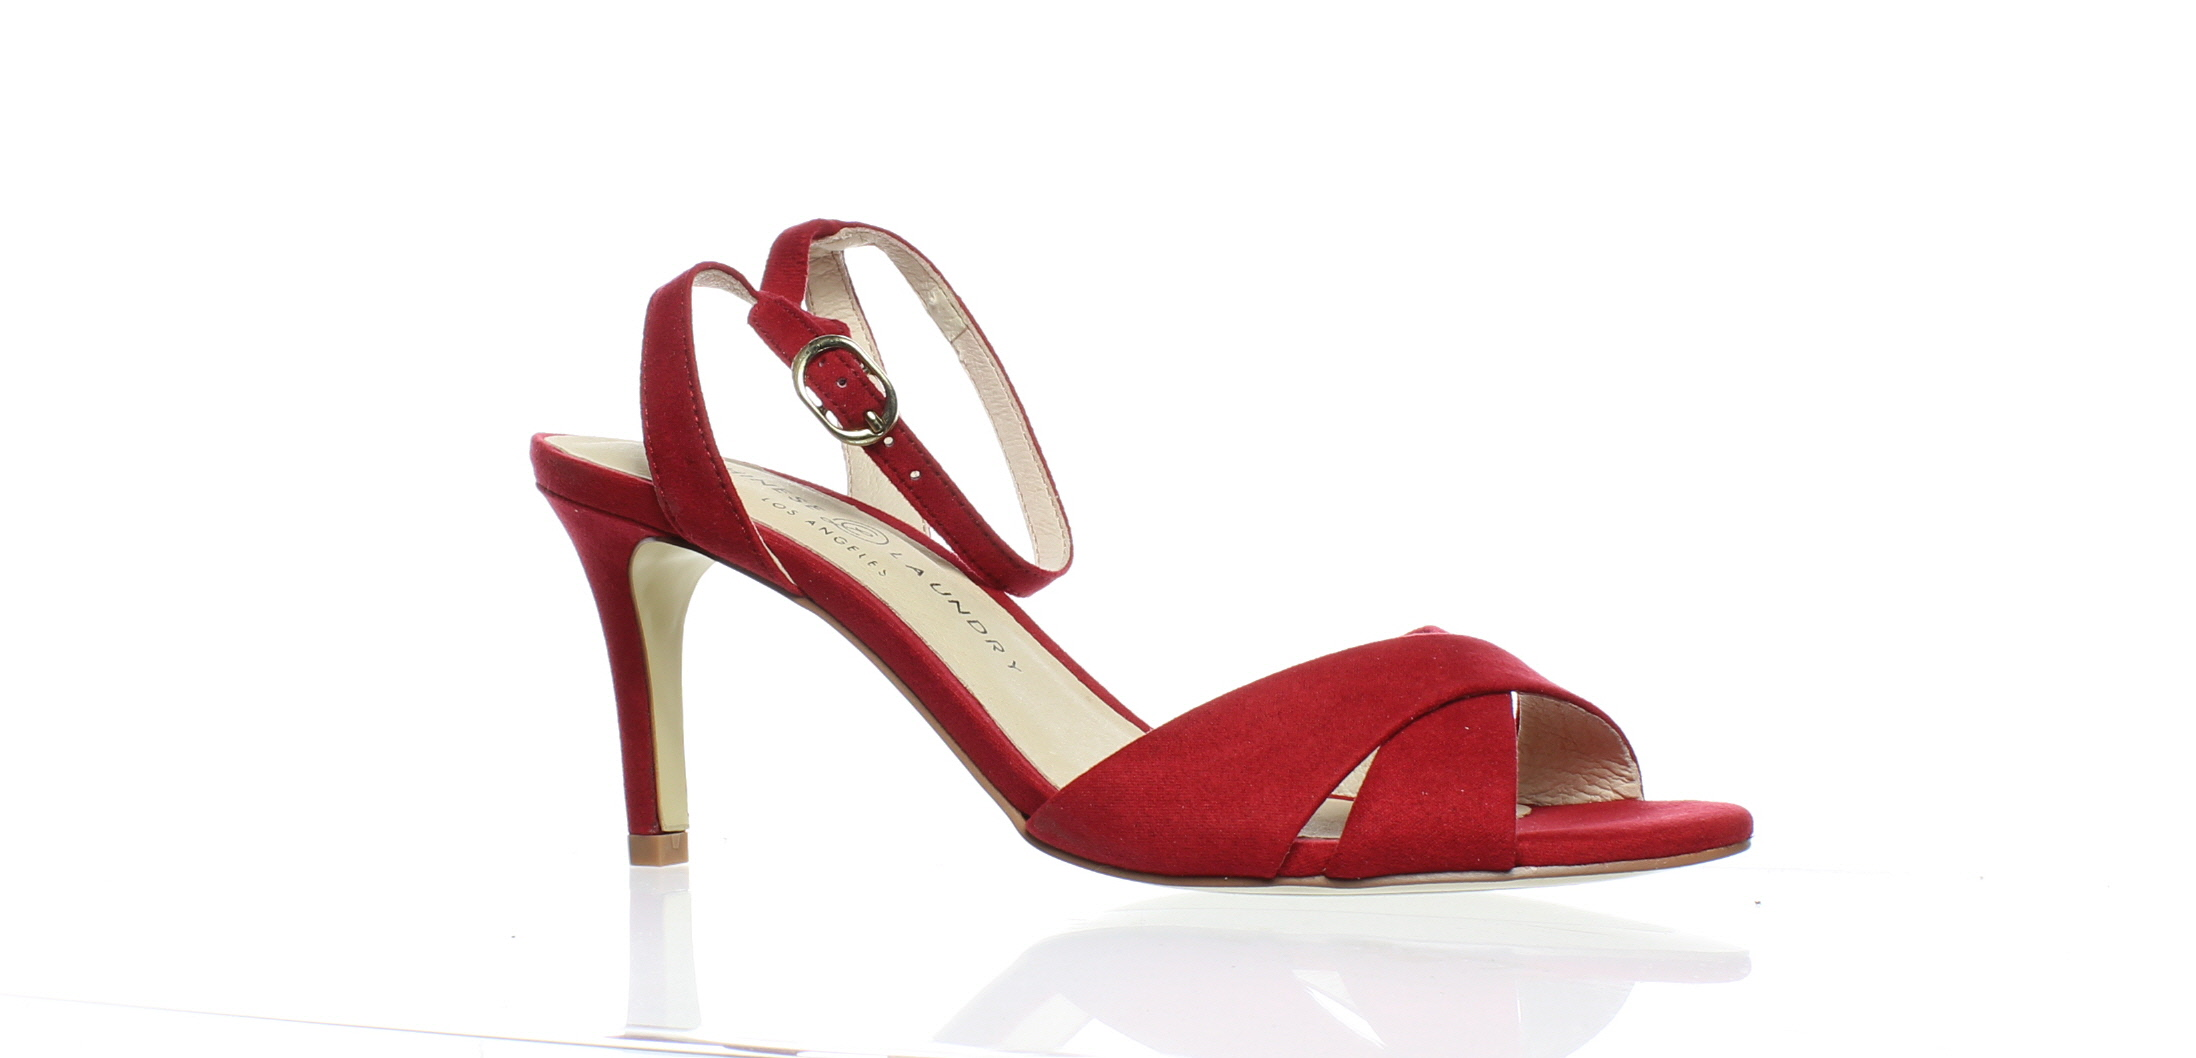 8e30d3b1d18 Chinese Laundry Womens Rosita Red Ankle Strap Heels Size 7 (43944 ...